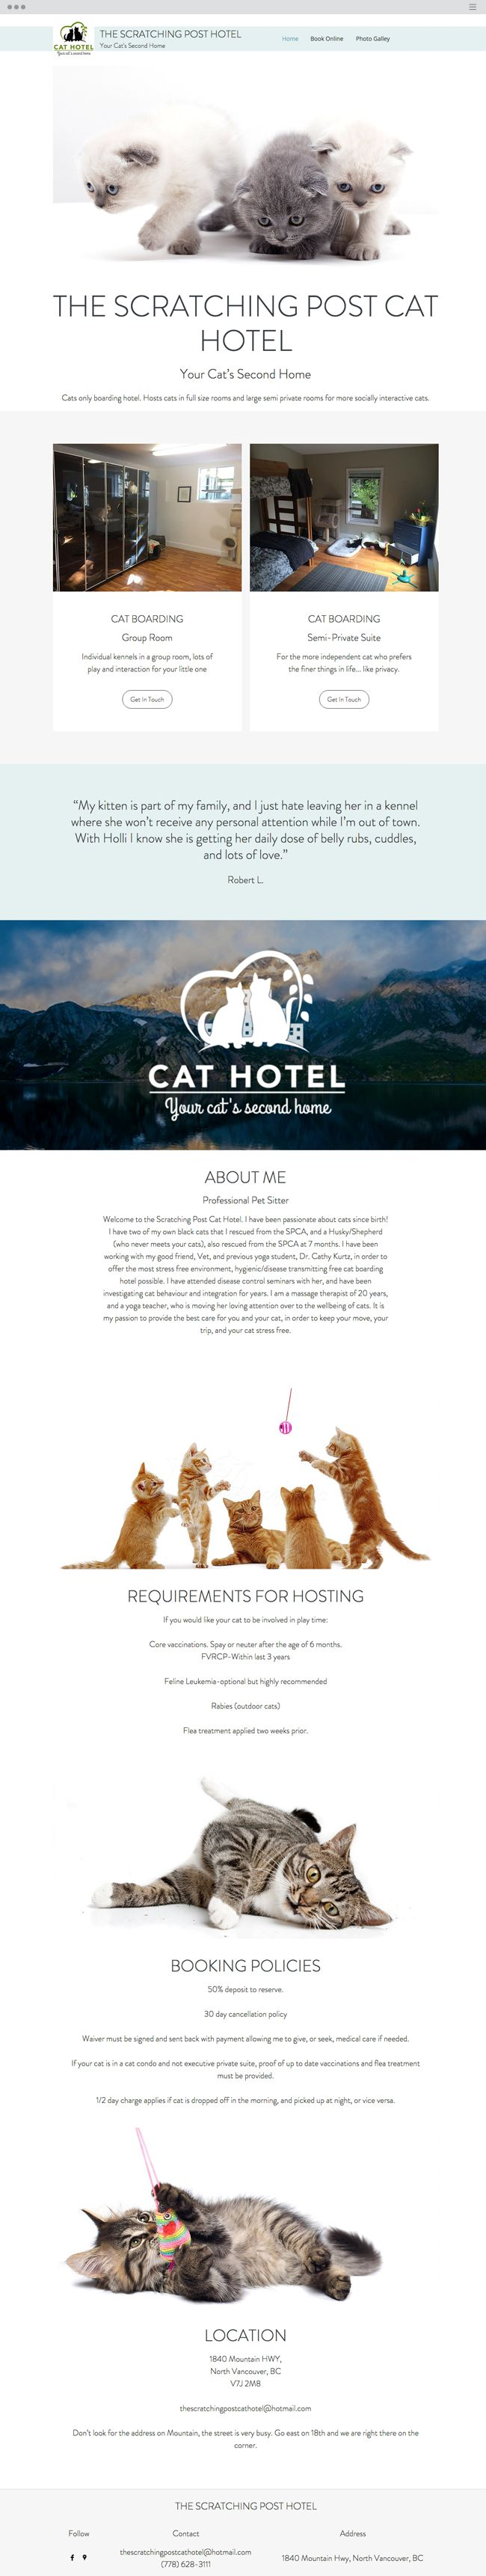 The Scratching Post Cat Hotel | Created using Wix ADI